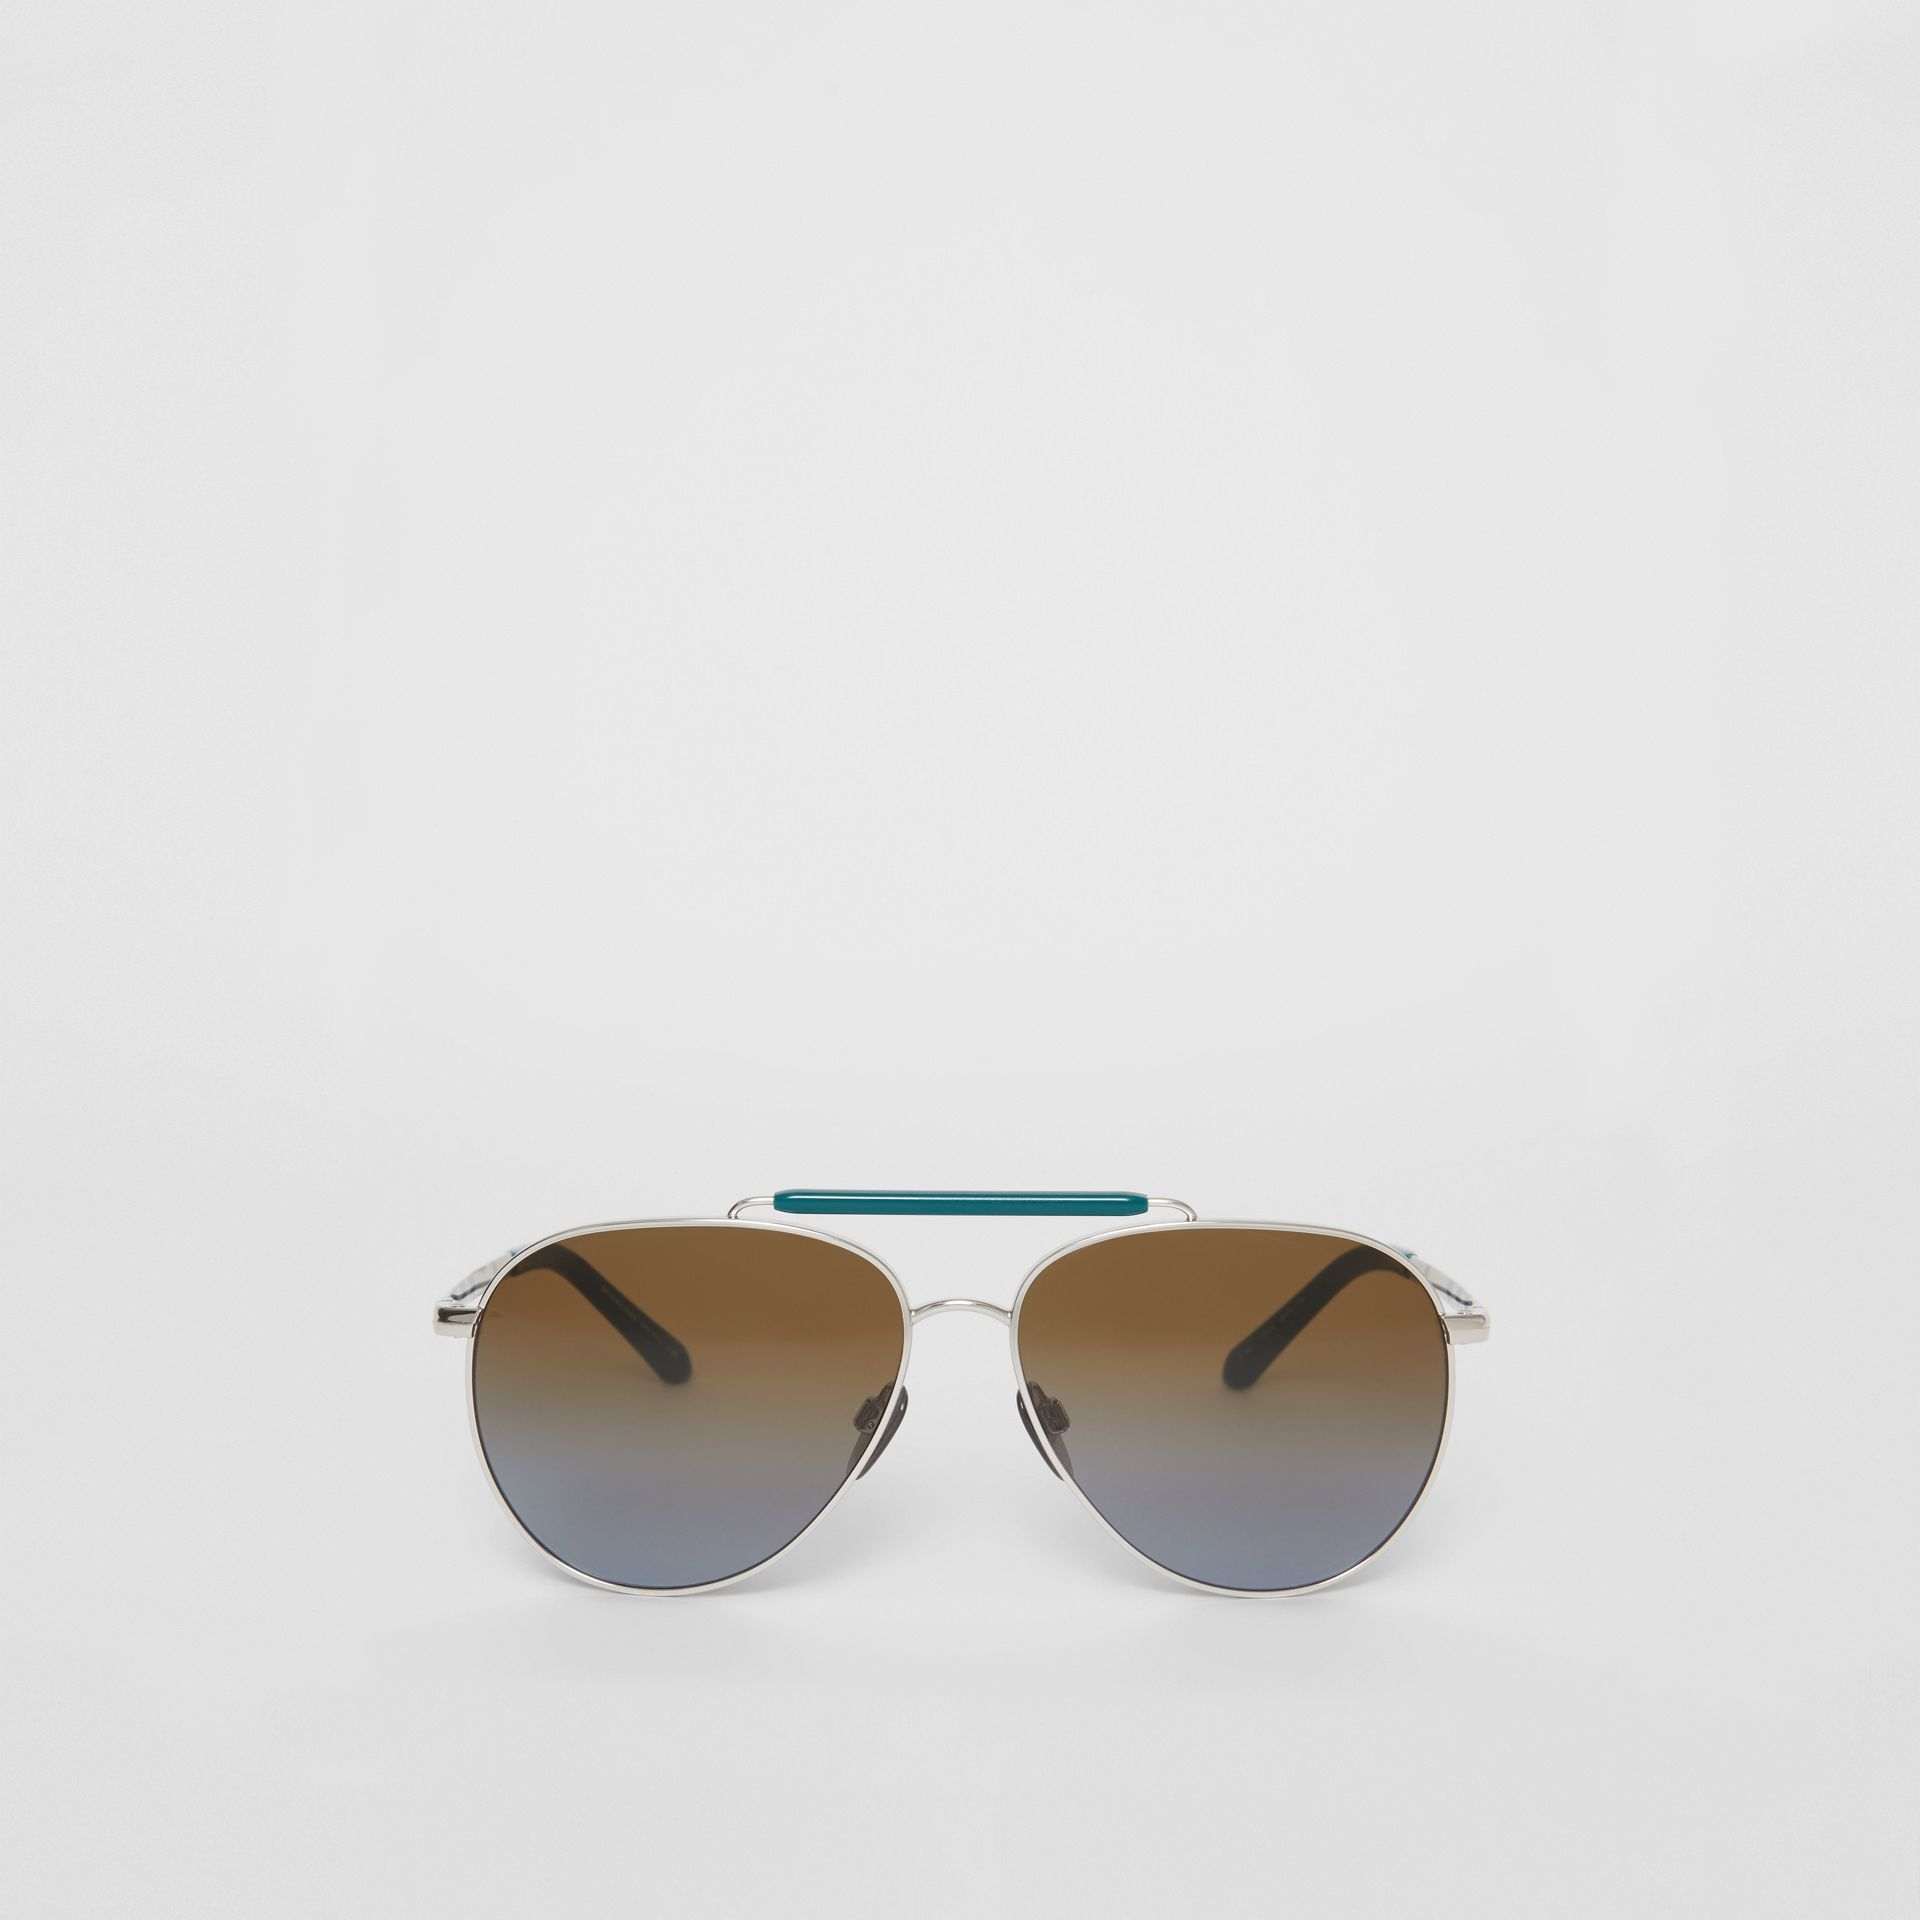 Top Bar Detail Pilot Sunglasses in Teal Blue - Men | Burberry United States - gallery image 0